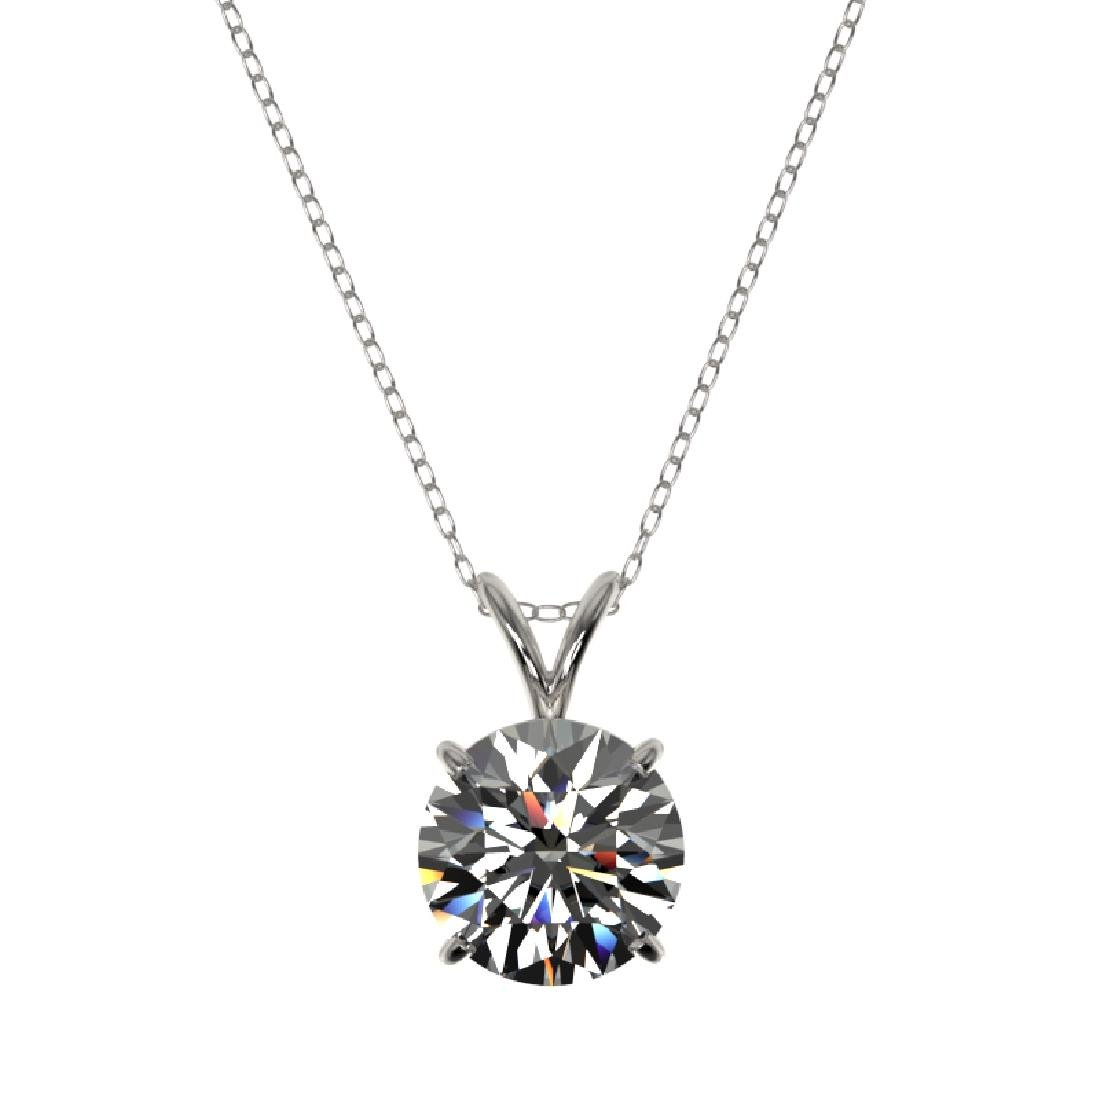 2 CTW Certified G-SI Diamond Bridal Necklace 10K White - 3